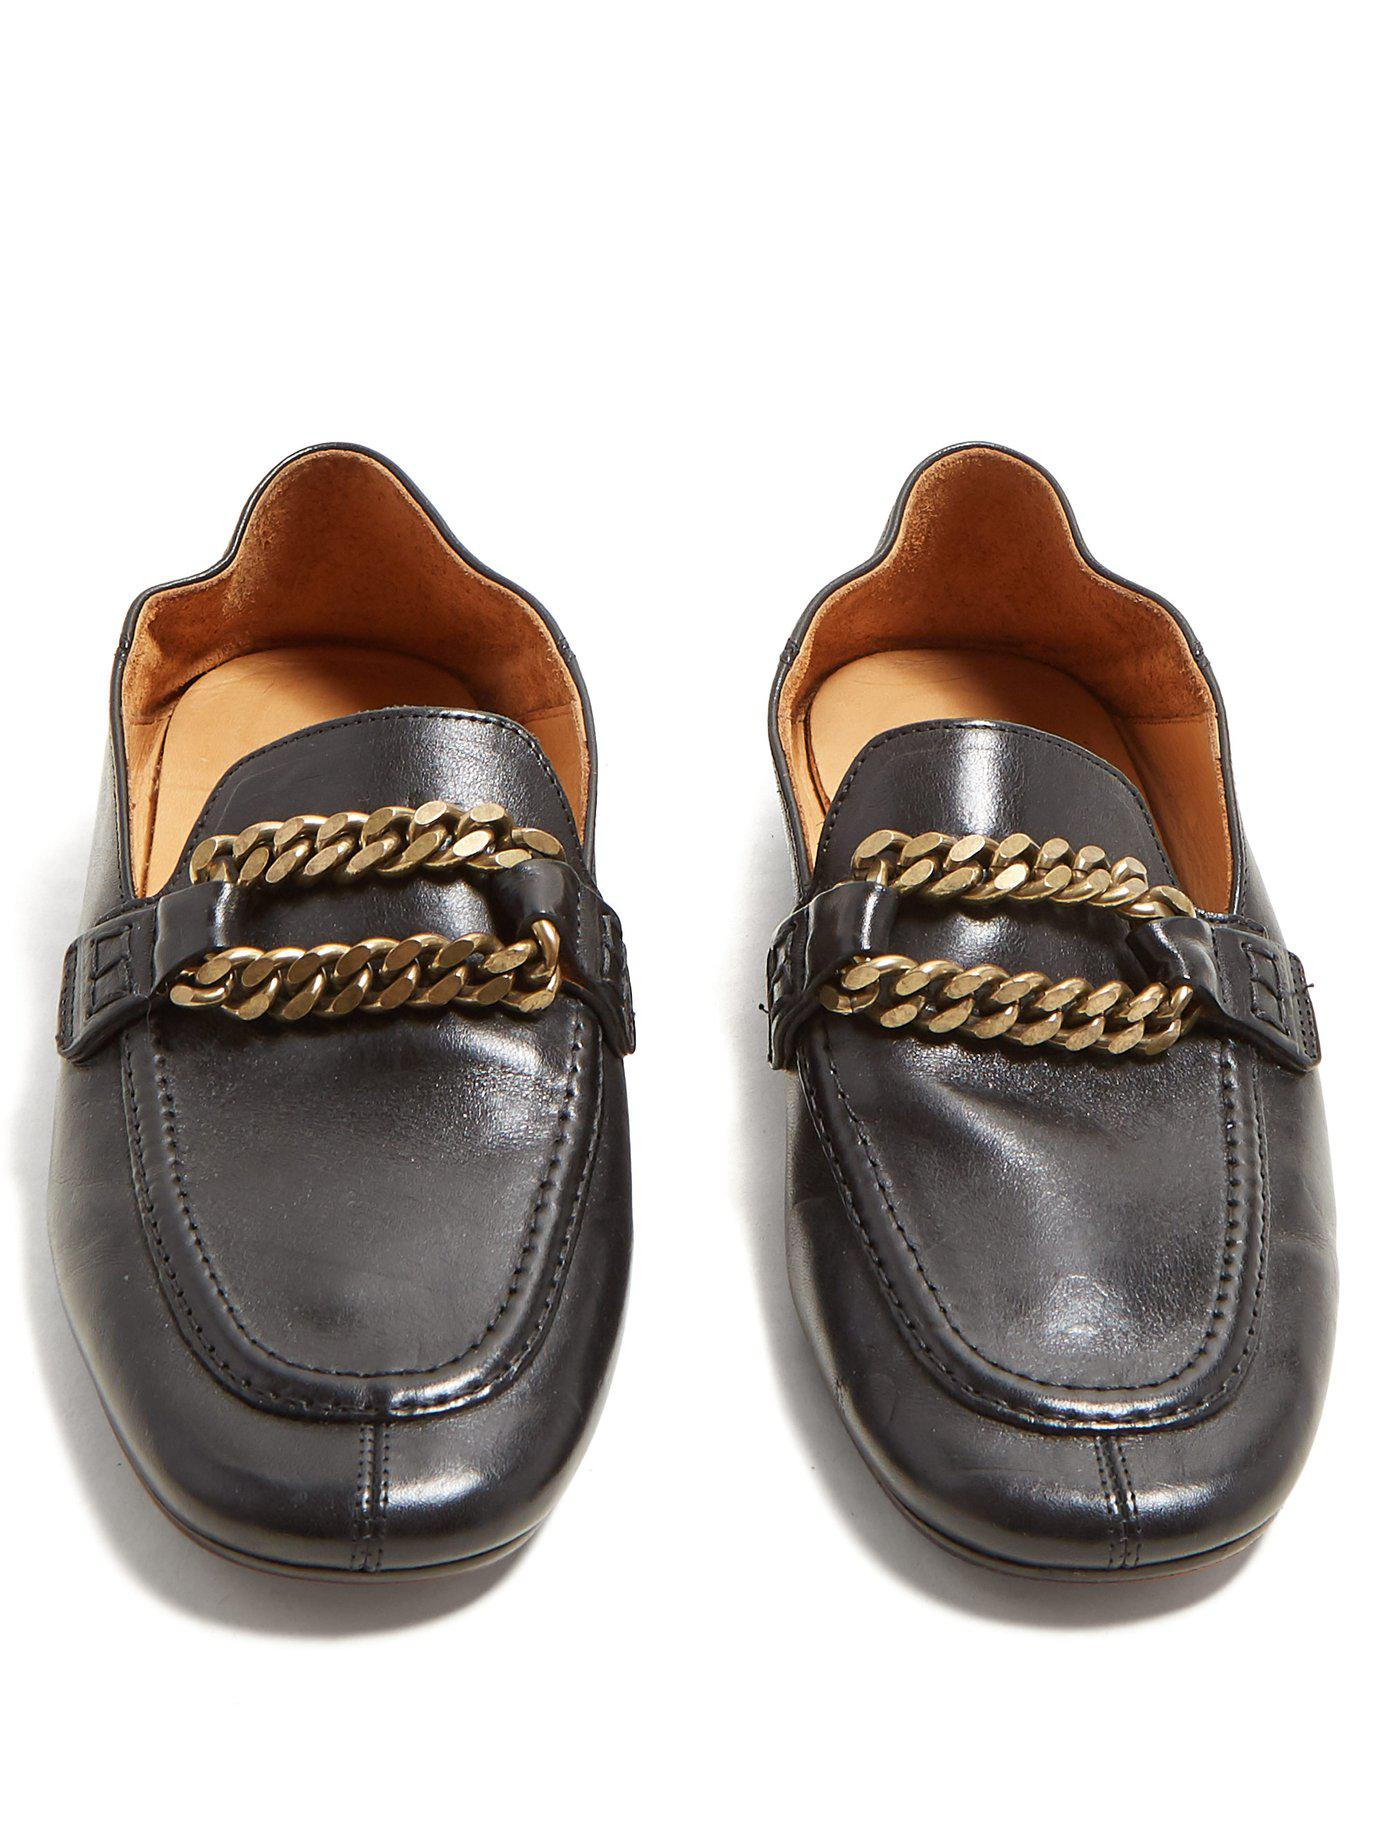 a11e86b38ab Isabel Marant - Black Firlee Chain Trimmed Leather Loafers - Lyst. View  fullscreen